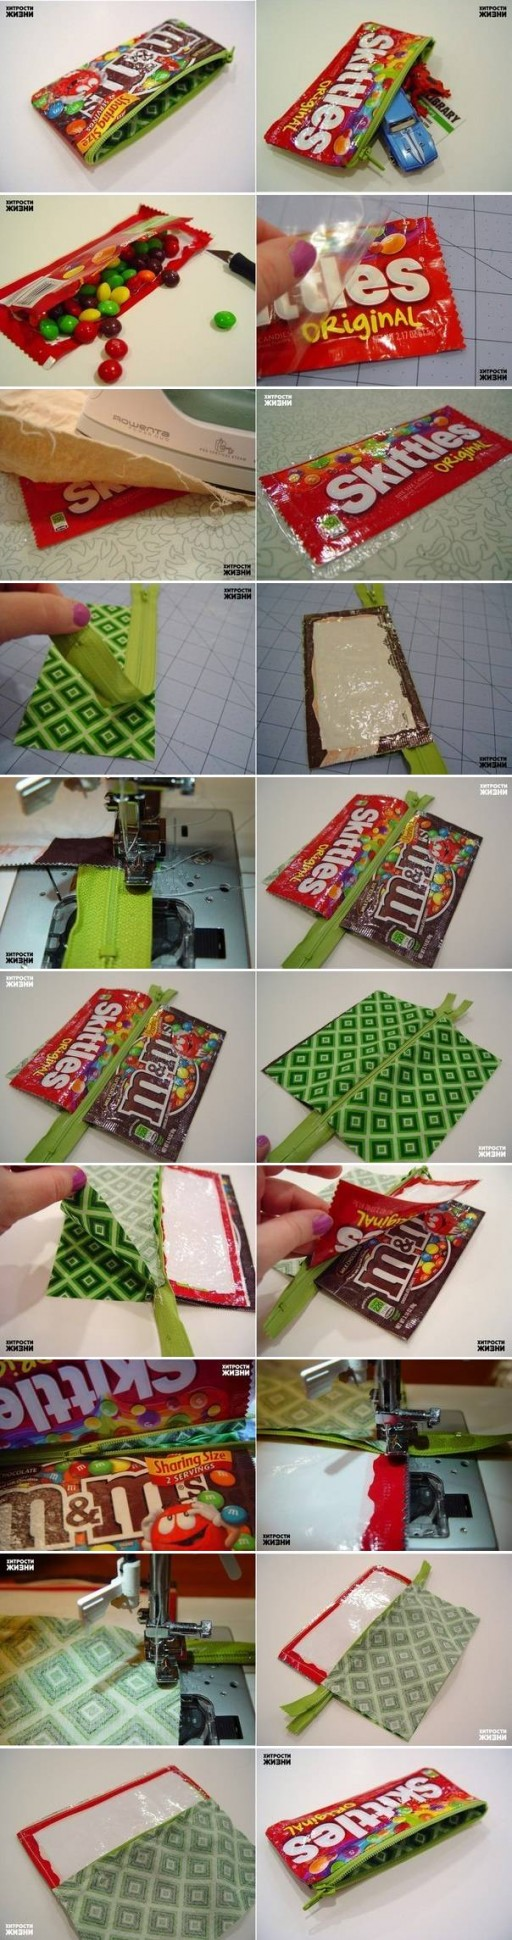 How To Make Candy Wrap Pencil Case step by step DIY tutorial instructions